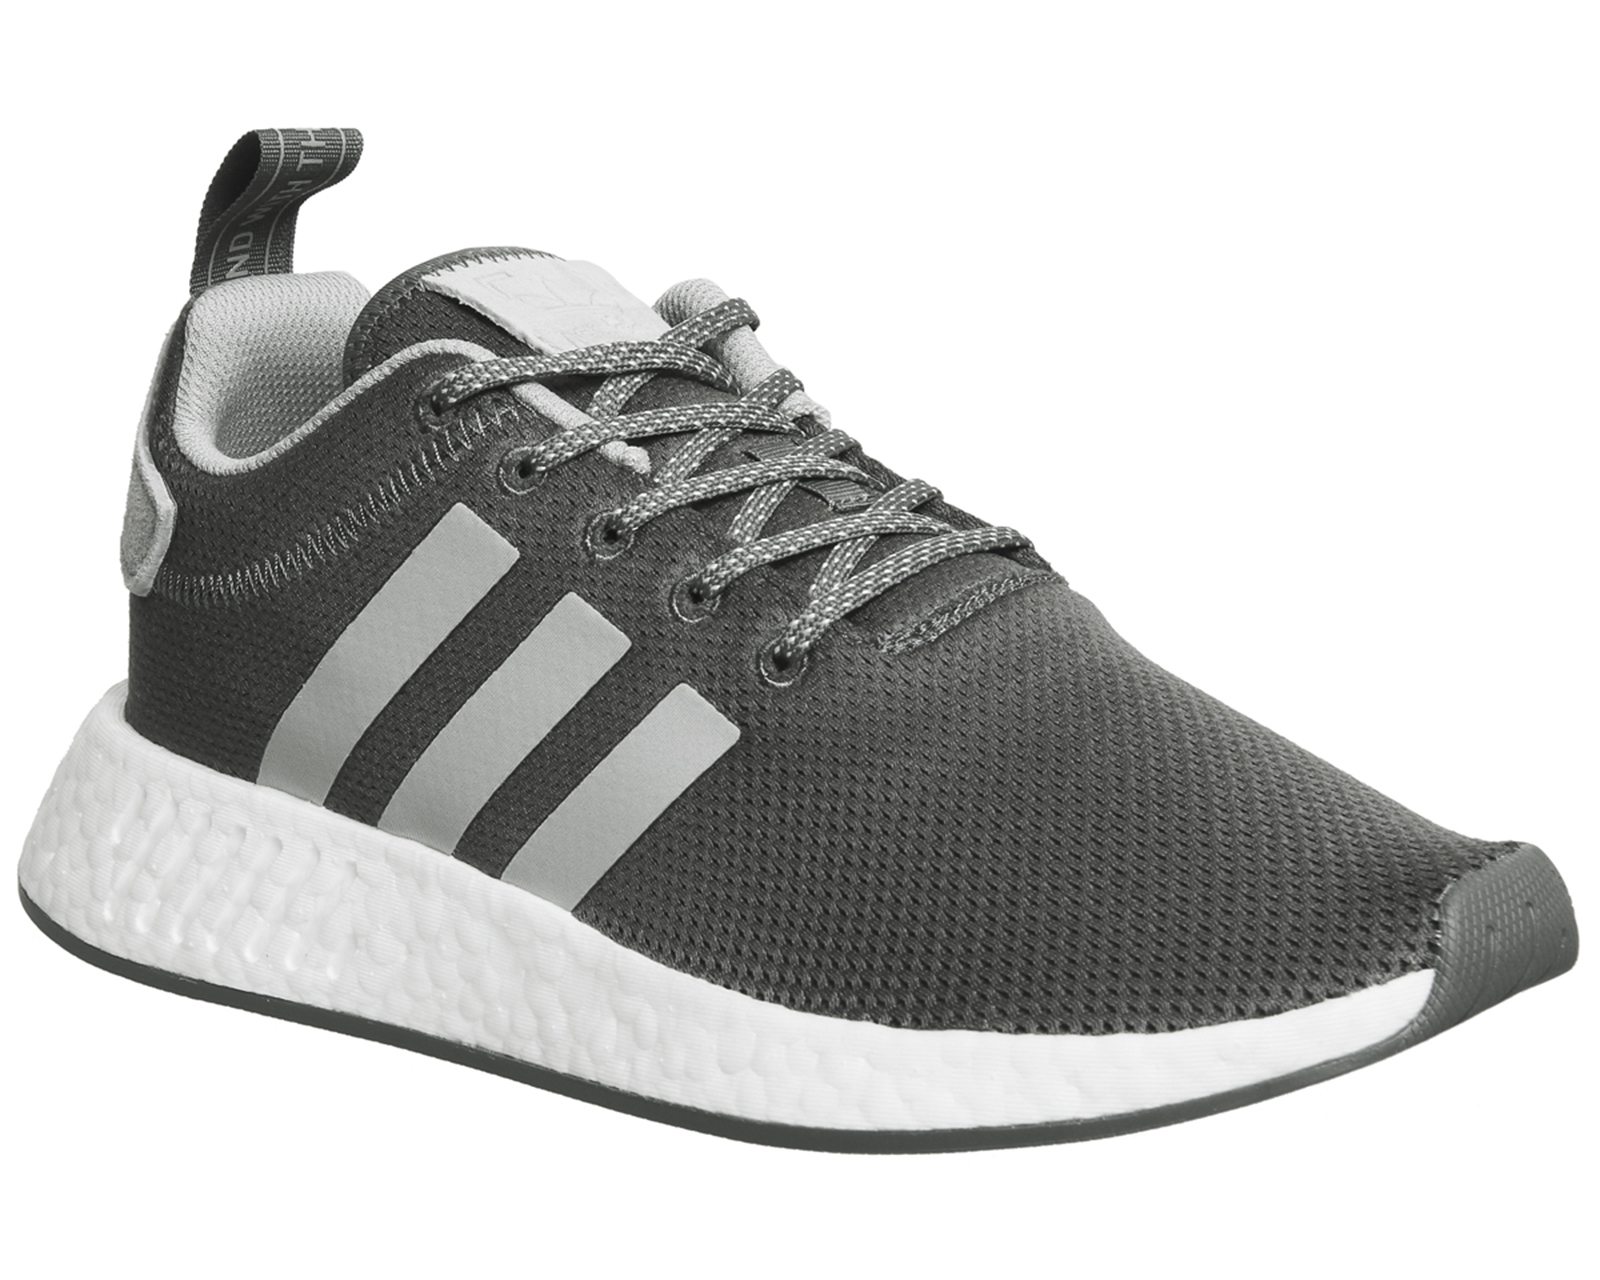 e72a2e86ae0fc Sentinel Womens Adidas Nmd R2 Trainers Grey Maroon Trainers Shoes